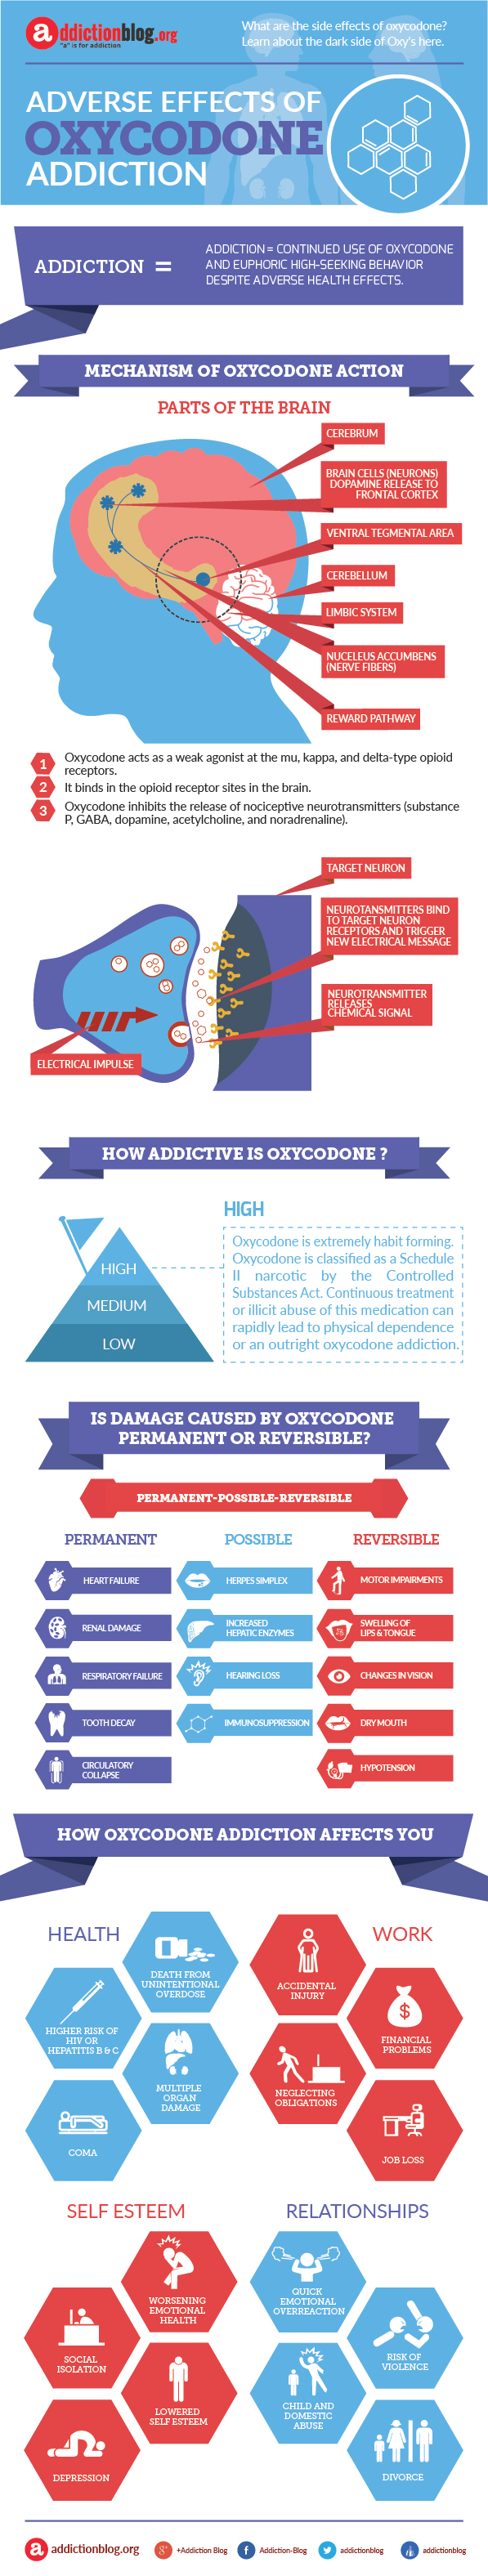 Oxycodone addiction and side effects (INFOGRAPHIC)